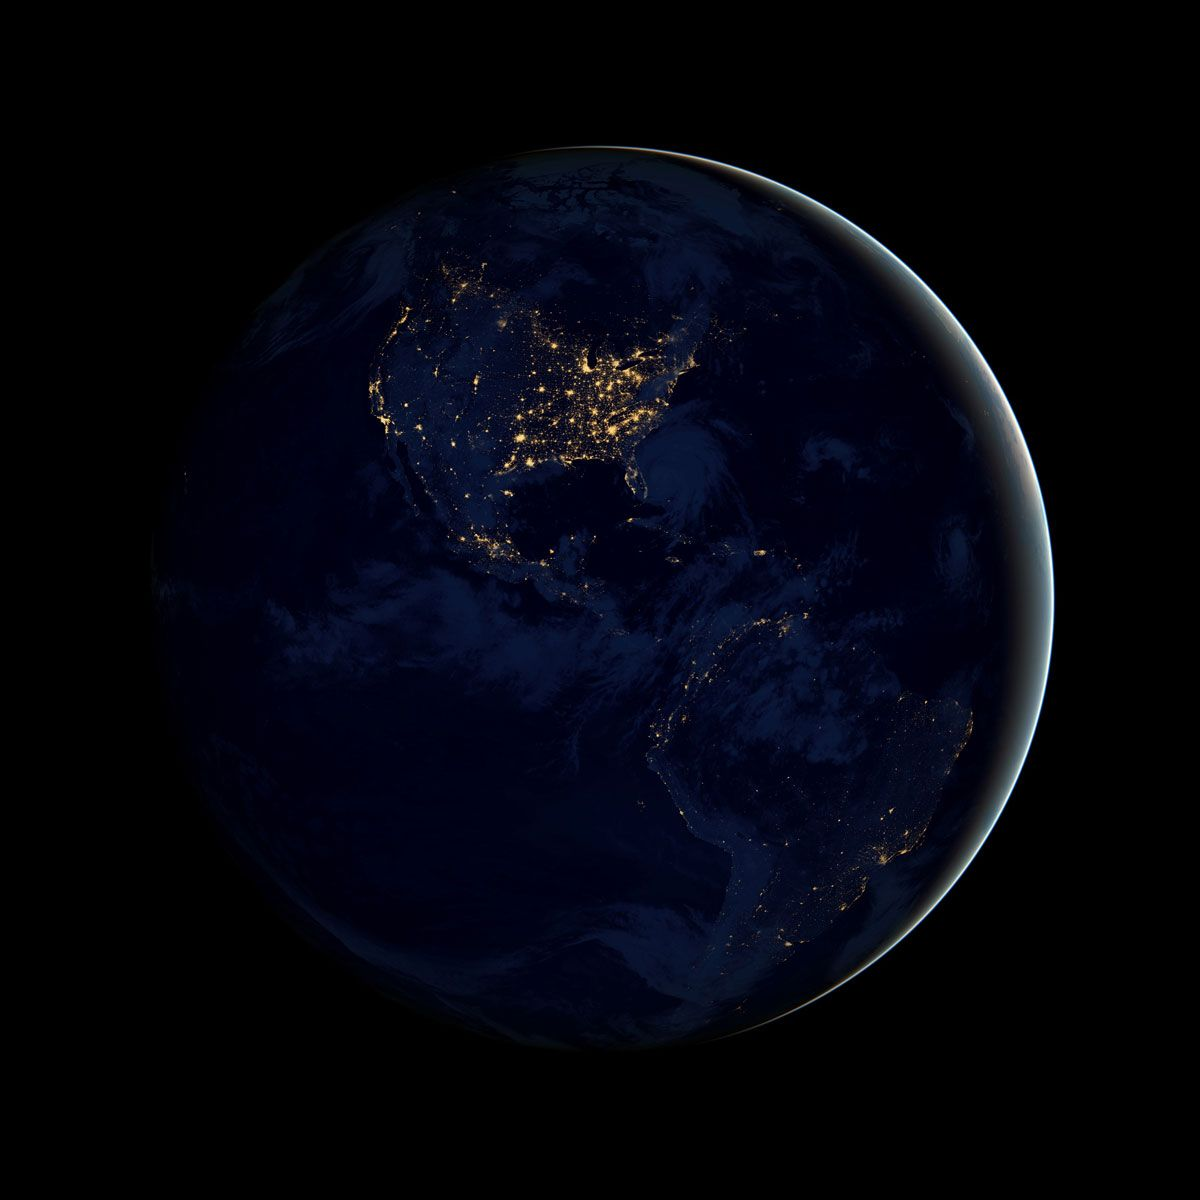 Nasa Celebrates Earth Day With 26 Jaw Dropping Images Of Our Planet Terre Et Espace Photo Satellite Terre